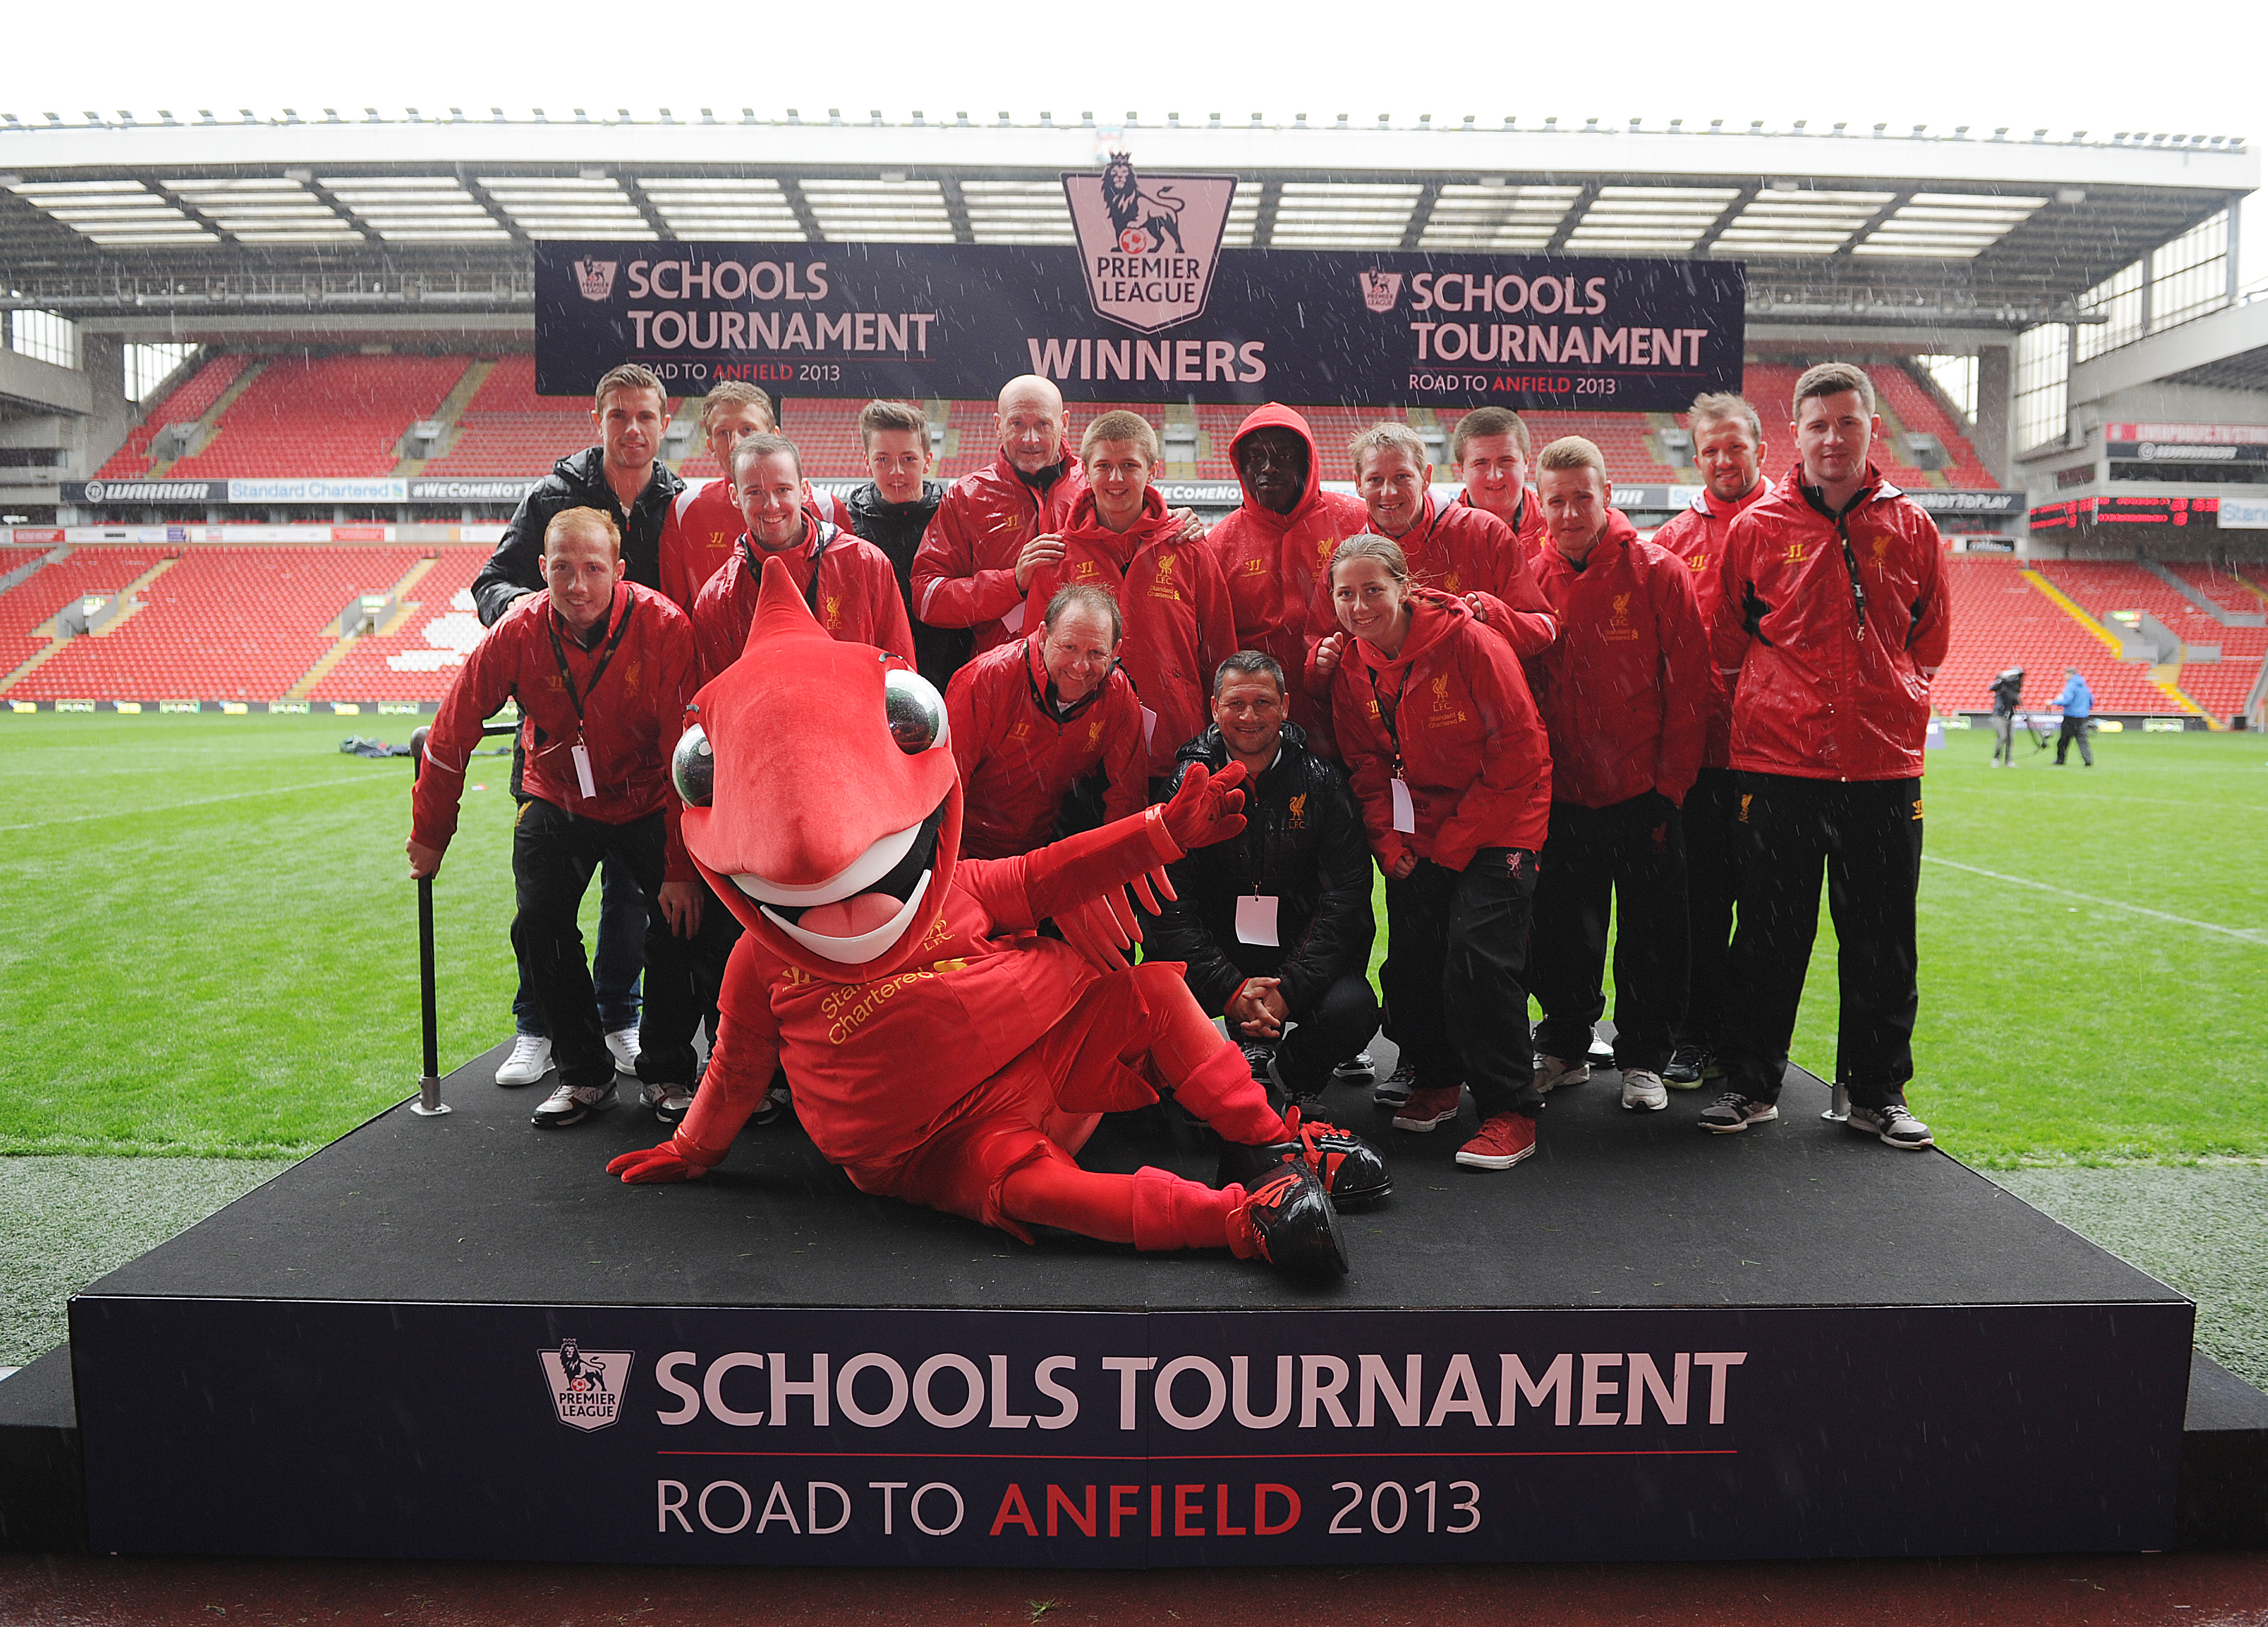 3-LFC stars, Jordan Henderson and Lucas Leiva, join Liverpool FC Foundation Youth Ambassadors&LFC mascot,Mighty Red,on the podium at Anfield